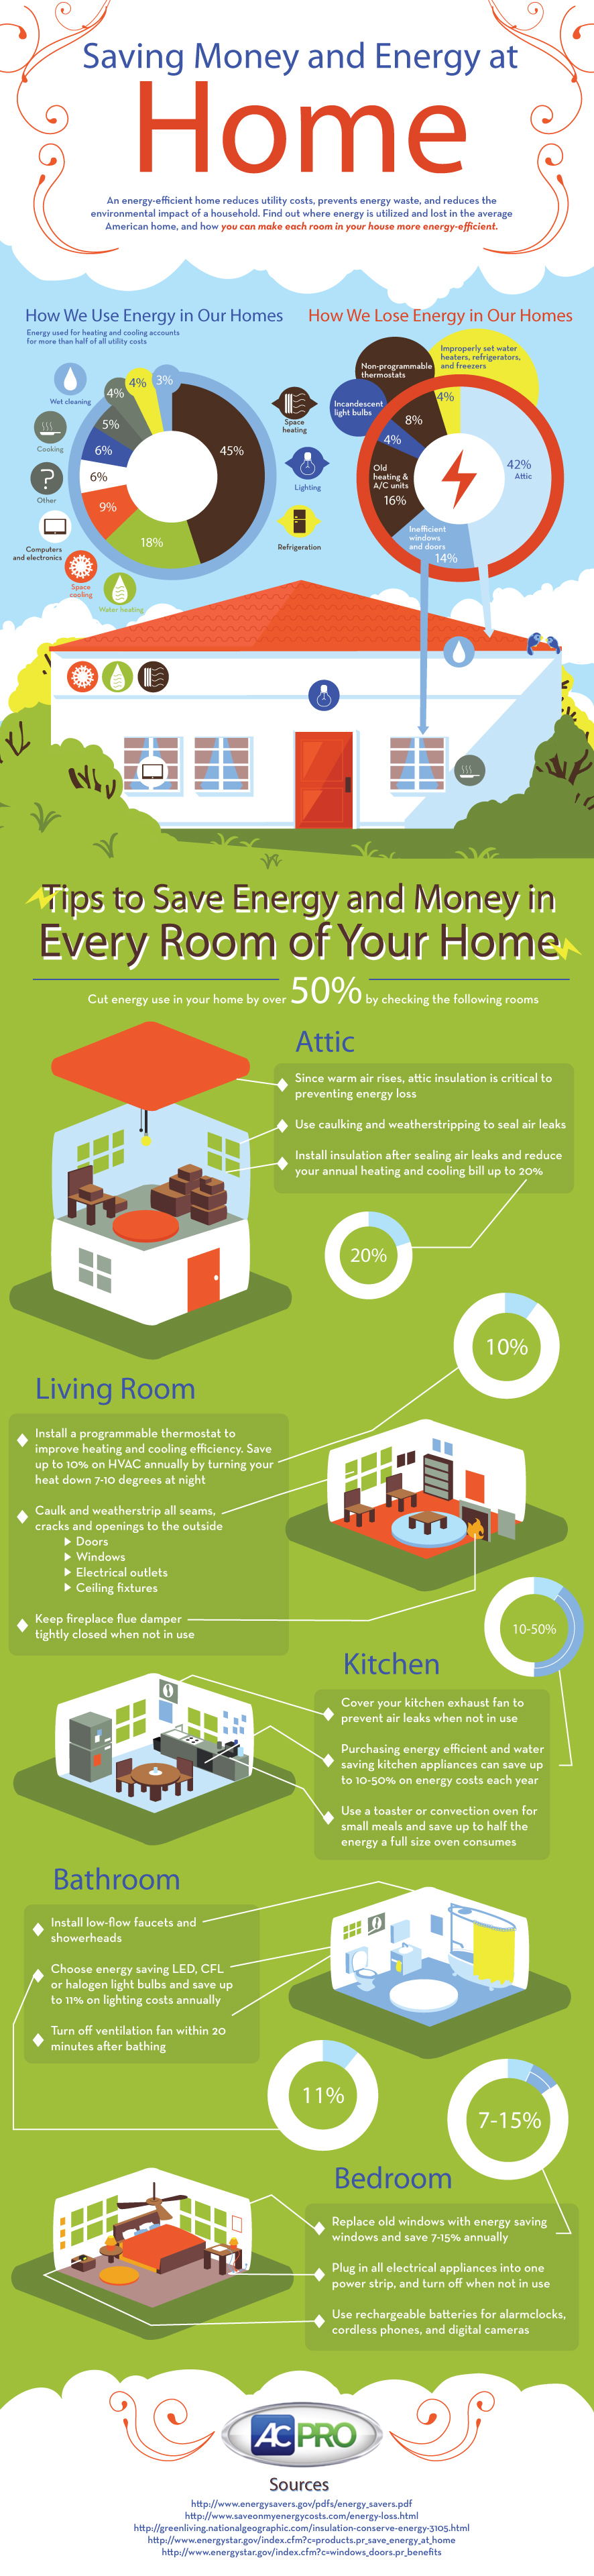 energy-savings-in-the-home